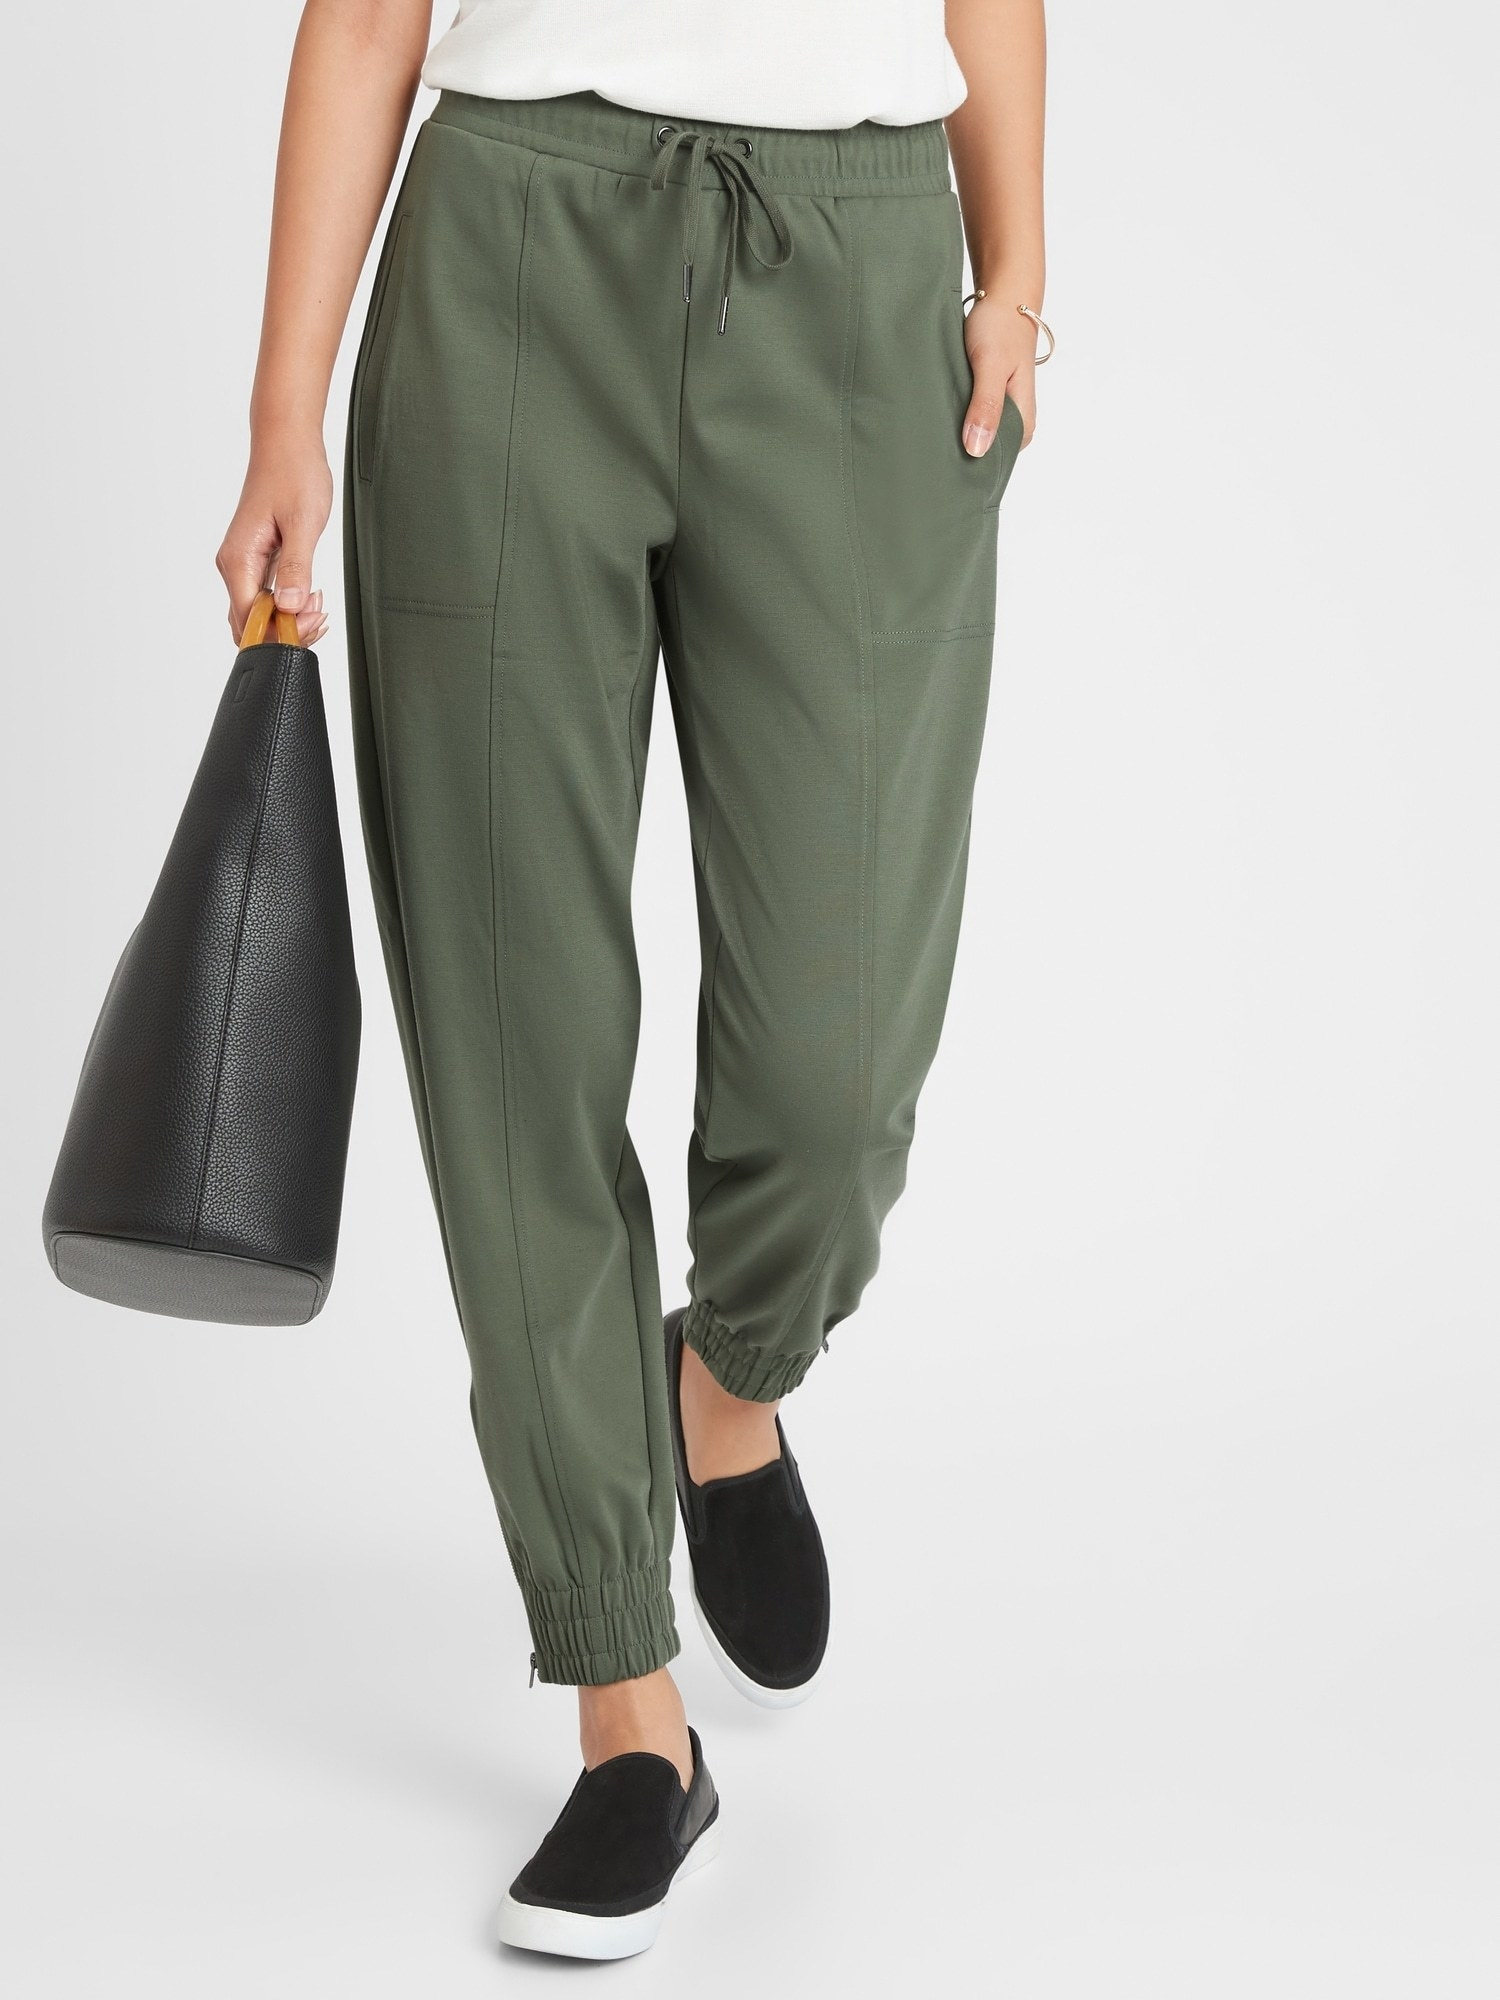 Model in the army green pants